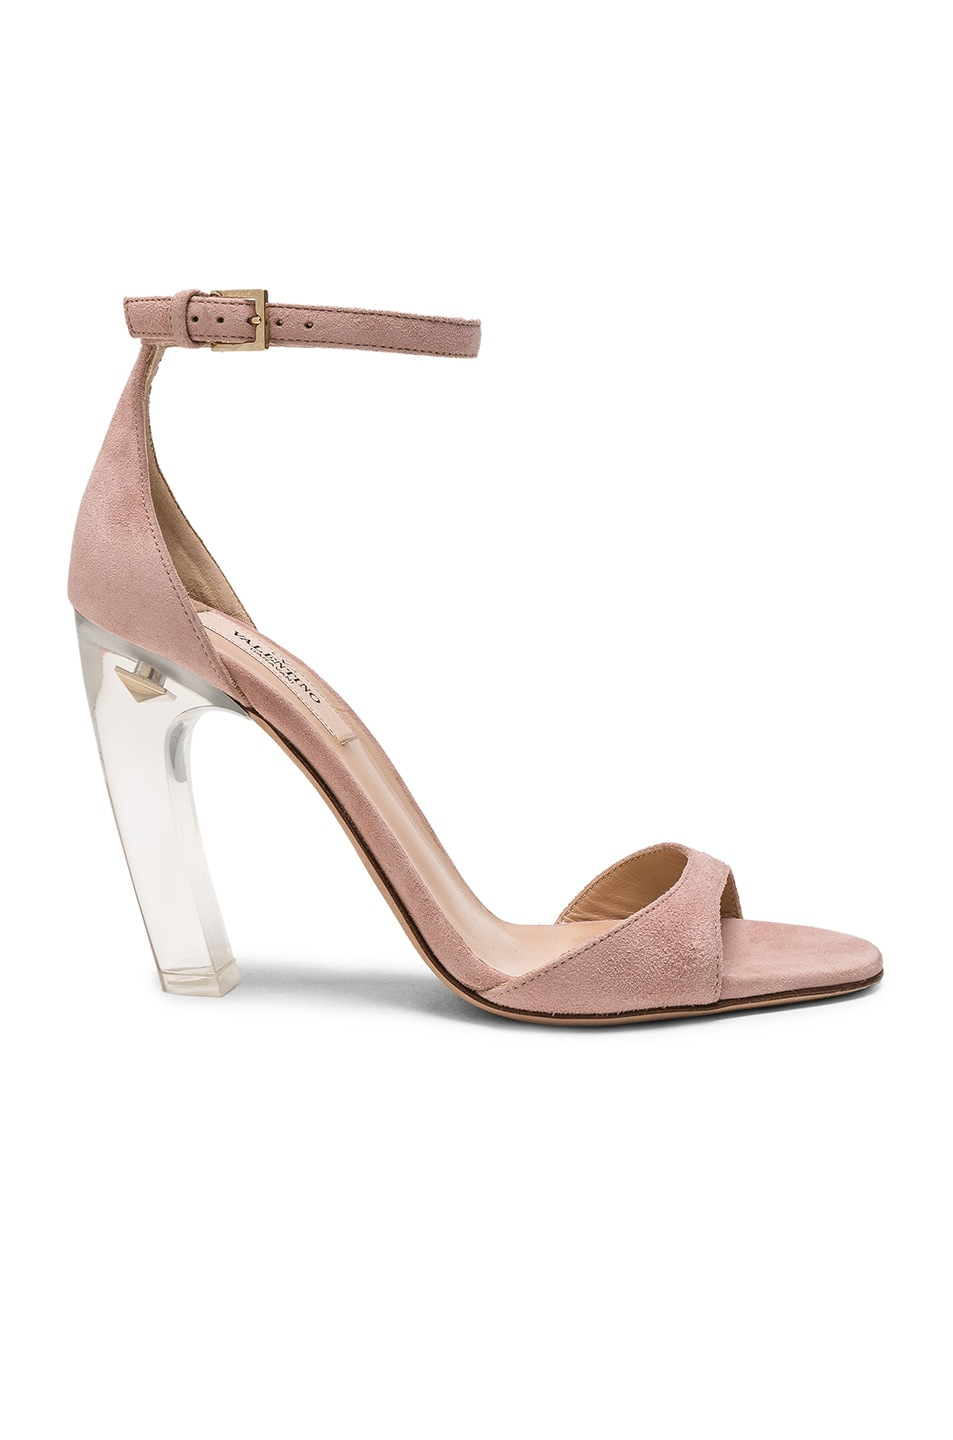 Image 1 of Valentino Garavani Twinkles Ankle Strap Sandals in Dusty Rose